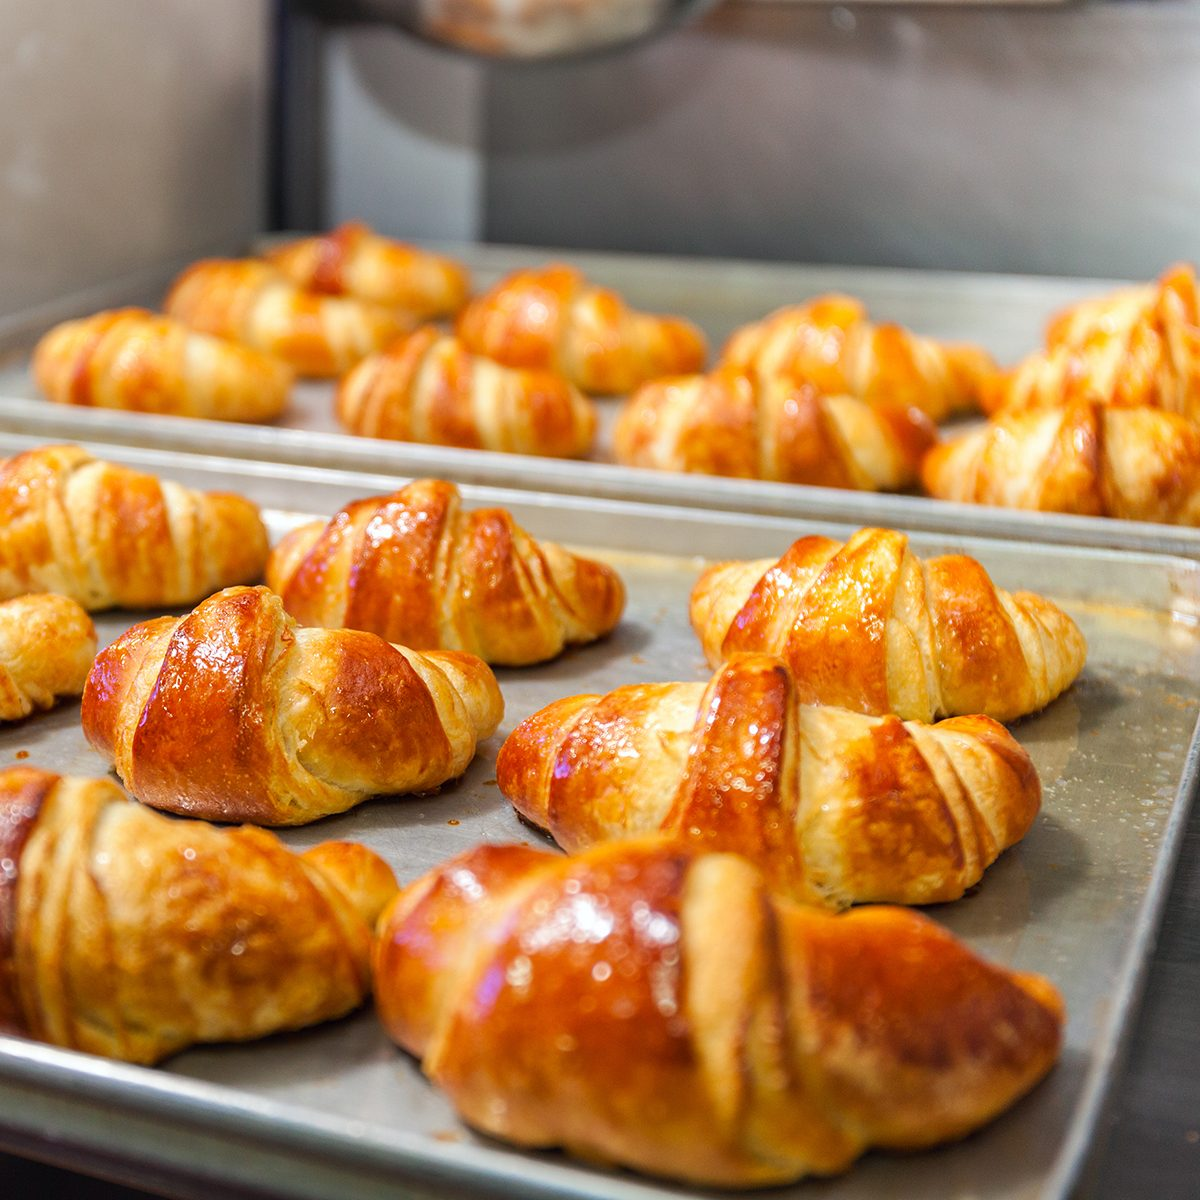 Fresh baked croissants on baking sheet